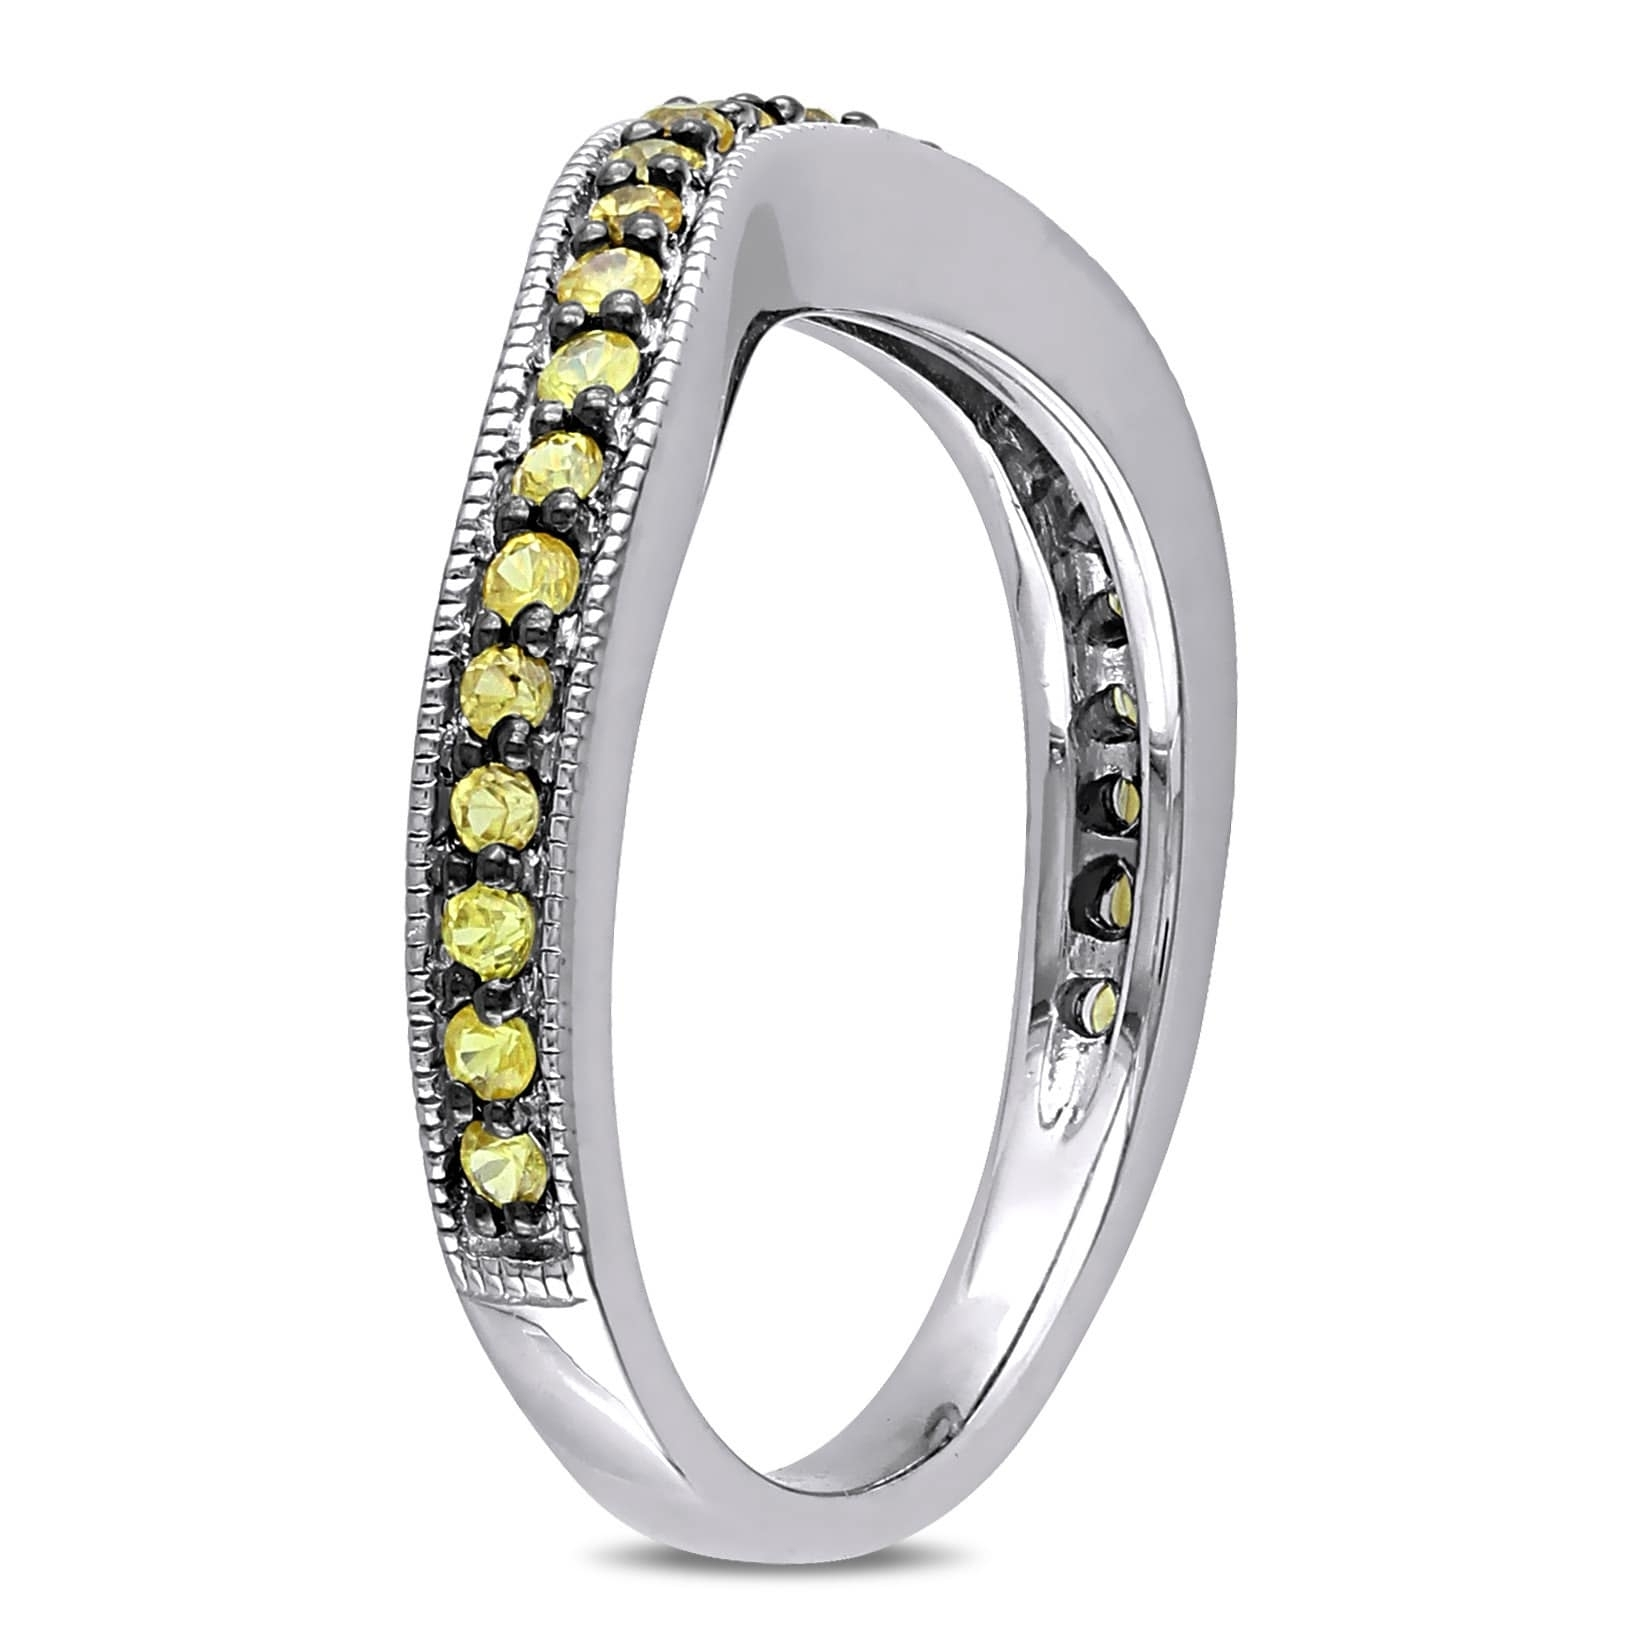 Miadora Yellow Sapphire Chevron Eternity Ring In Sterling Silver Throughout 2018 Chevron Eternity Rings (View 9 of 15)